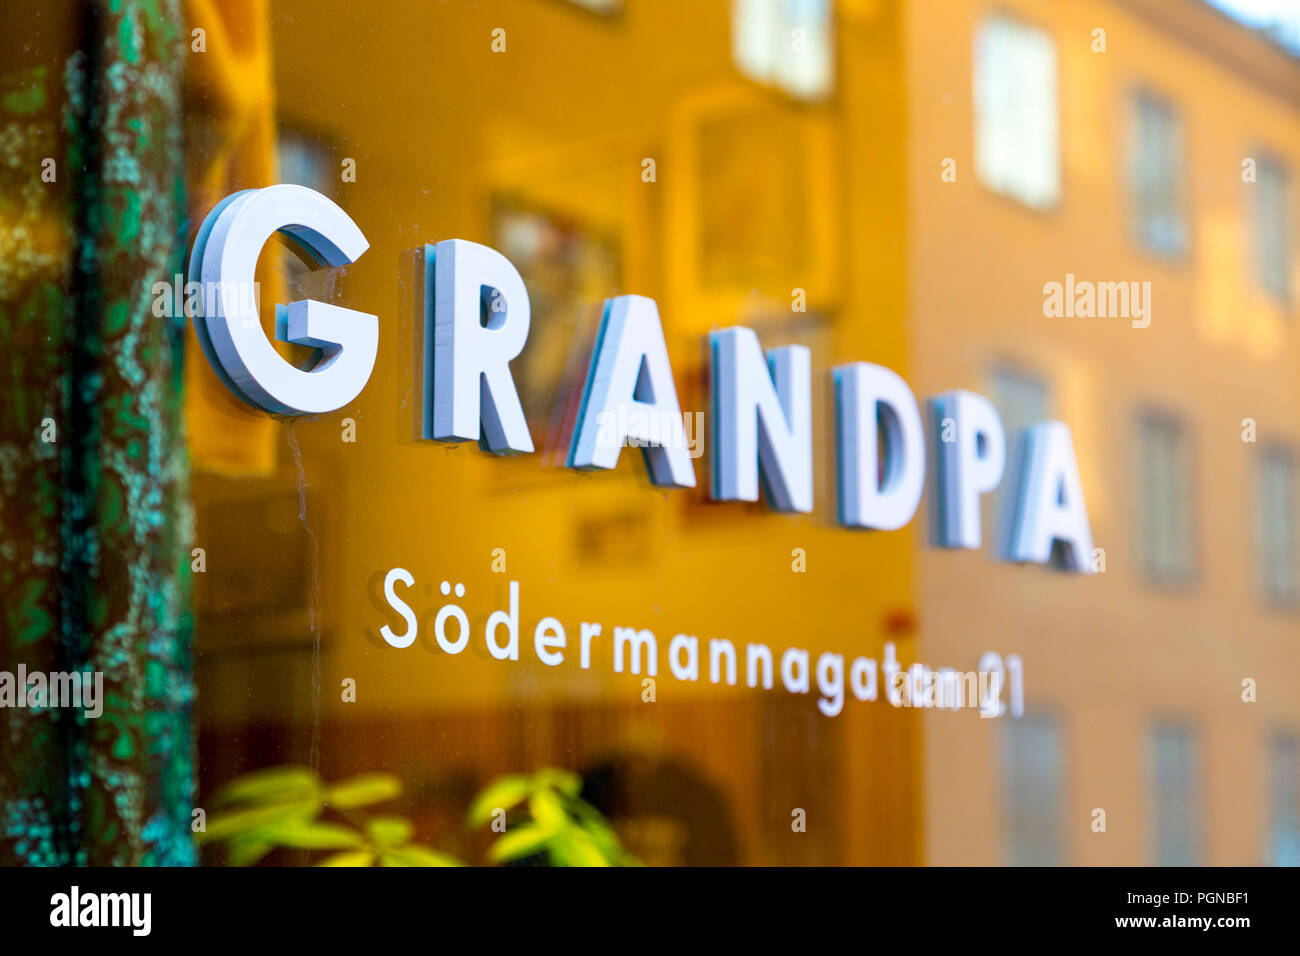 The front window of Scandinavian lifestyle shop Grandpa in Sofo, Sodermalm, Stockholm, Sweden - Stock Image